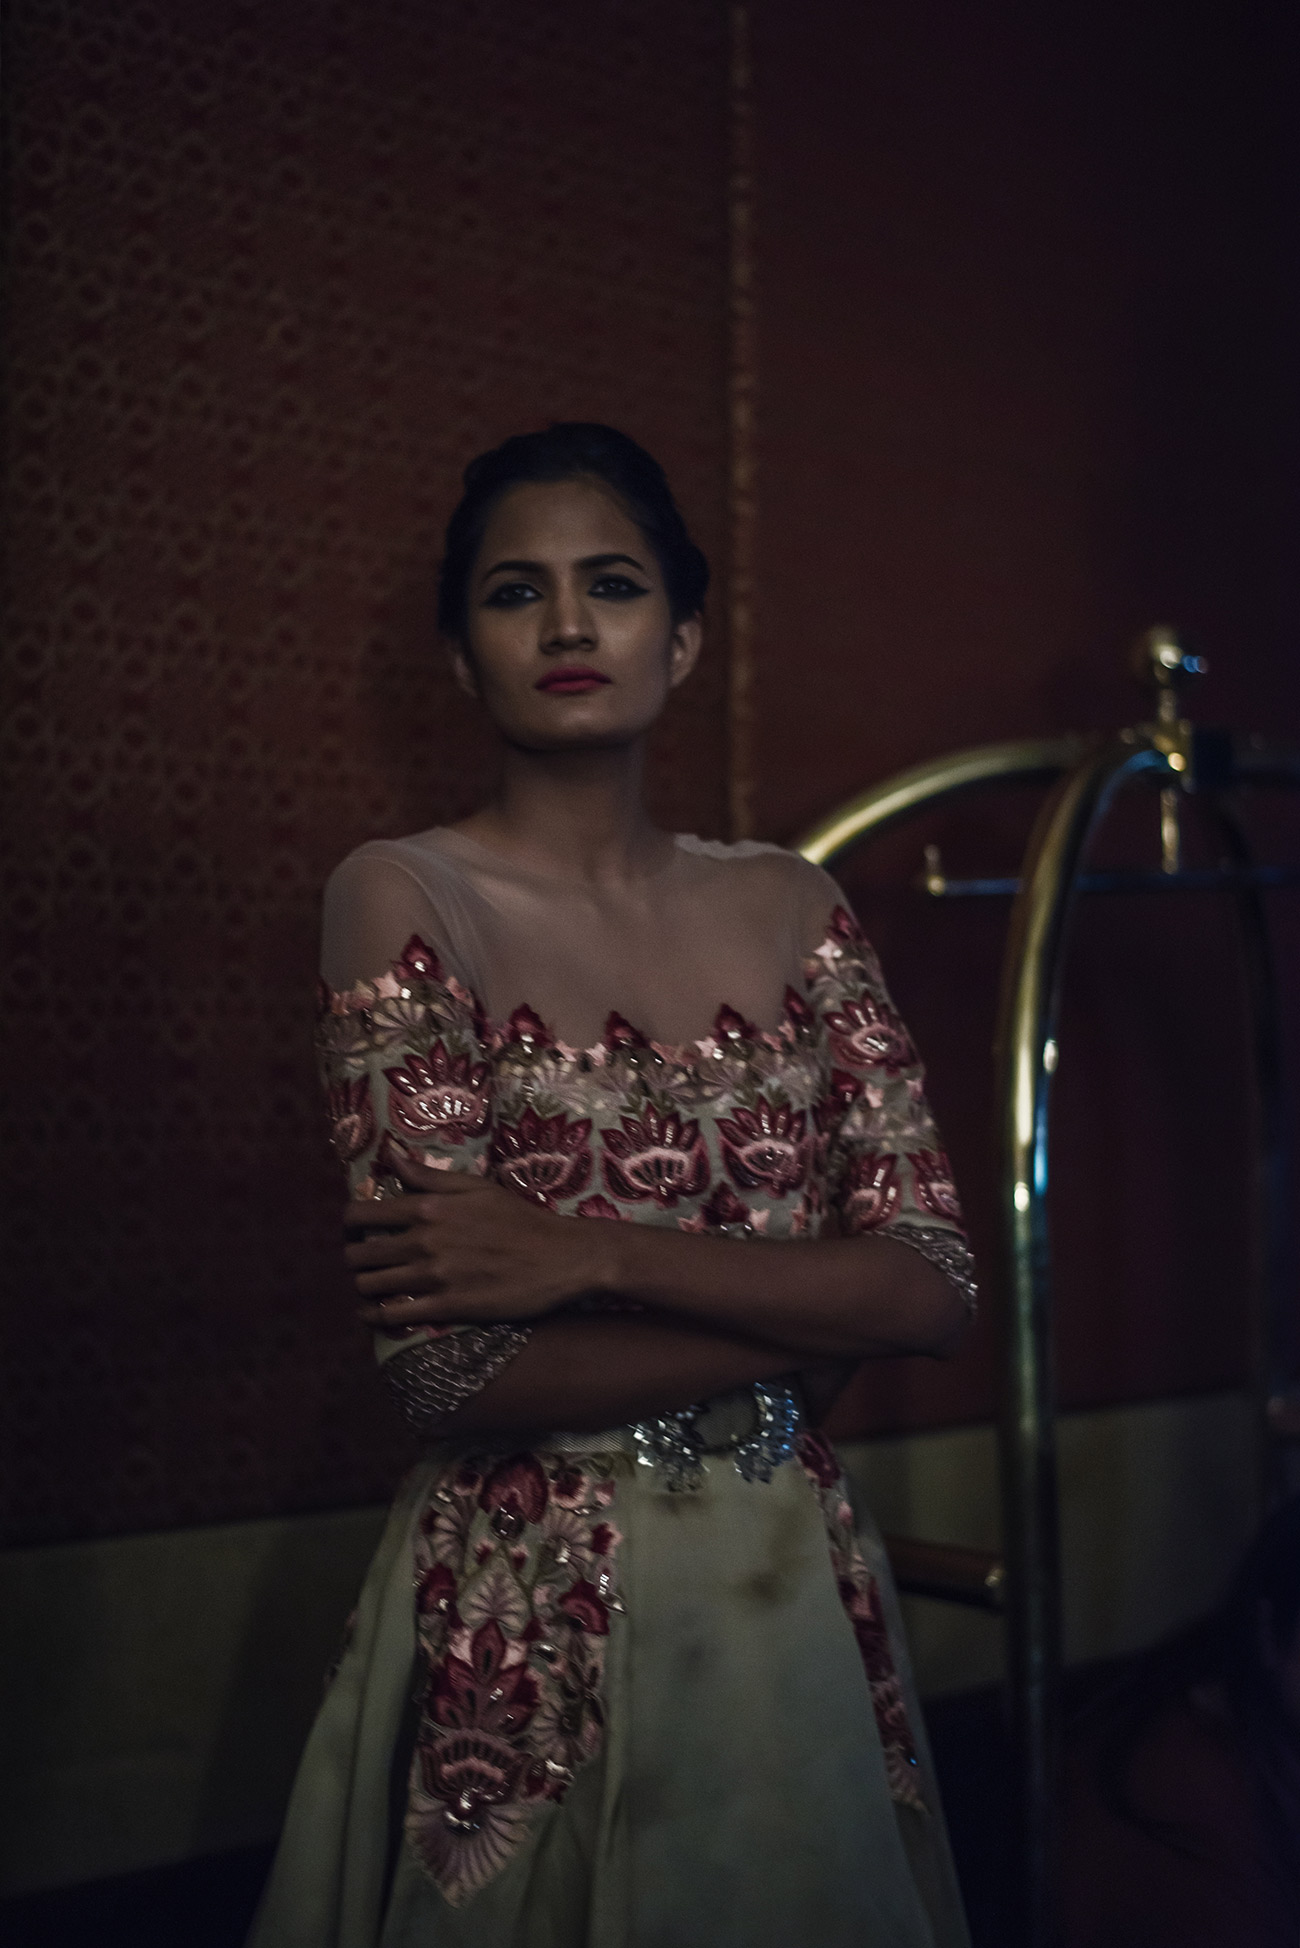 Backstage FDCI India Couture Week 2016 Photo by RAWKY KSH 11